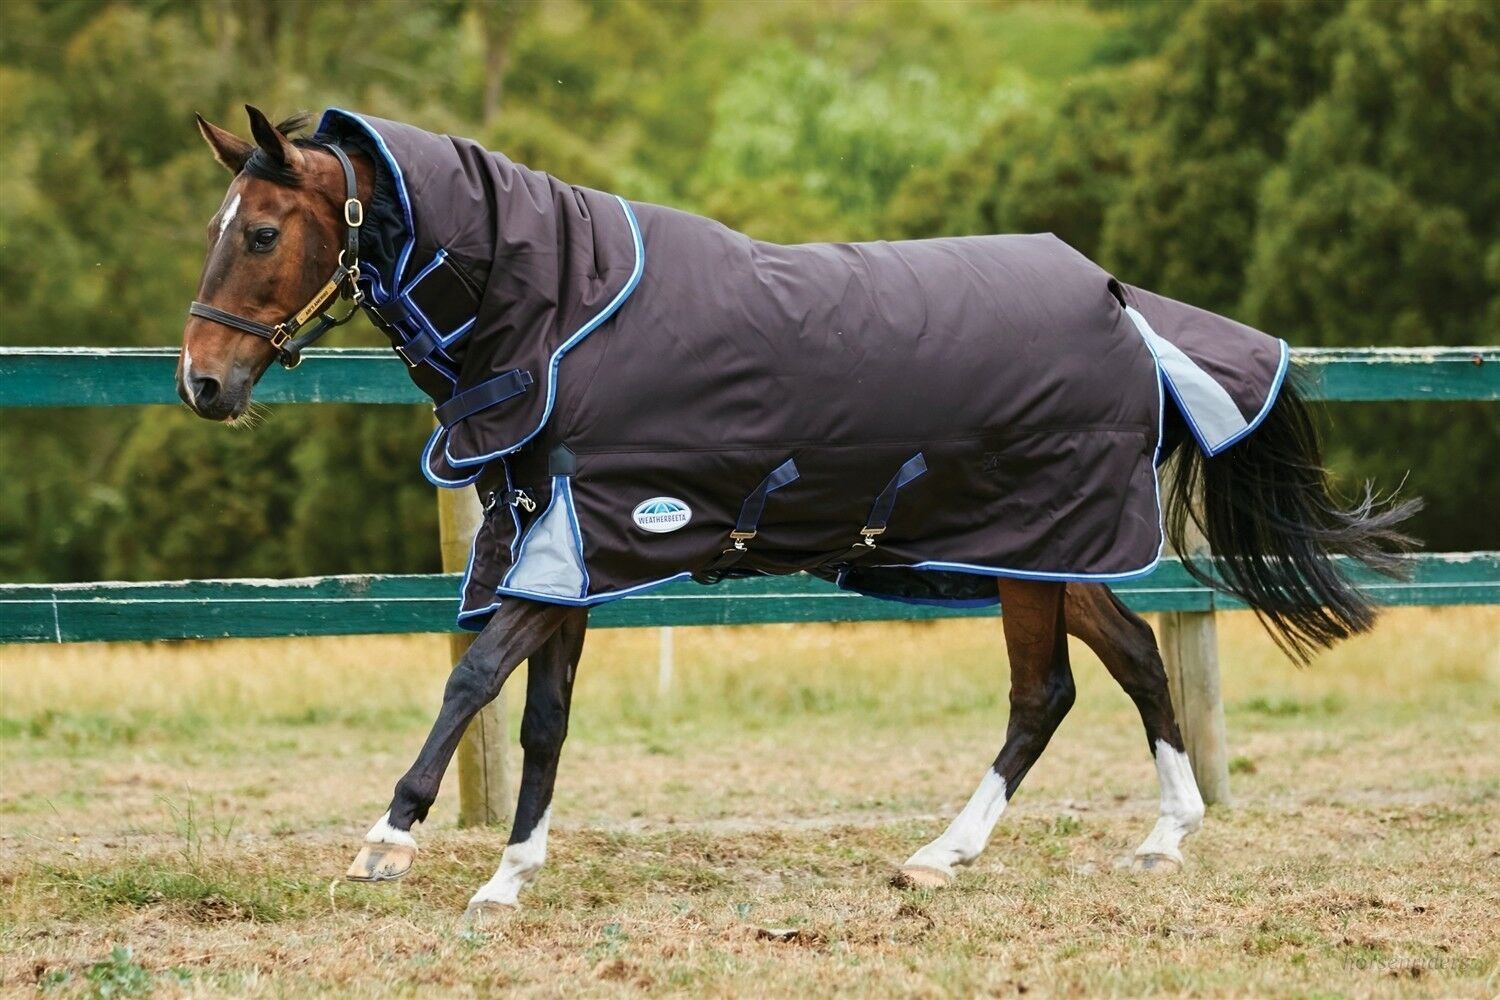 Weatherbeeta Winter Horse Blanket-Comfitec Ultra Cozi- D-A-N-Medium -69